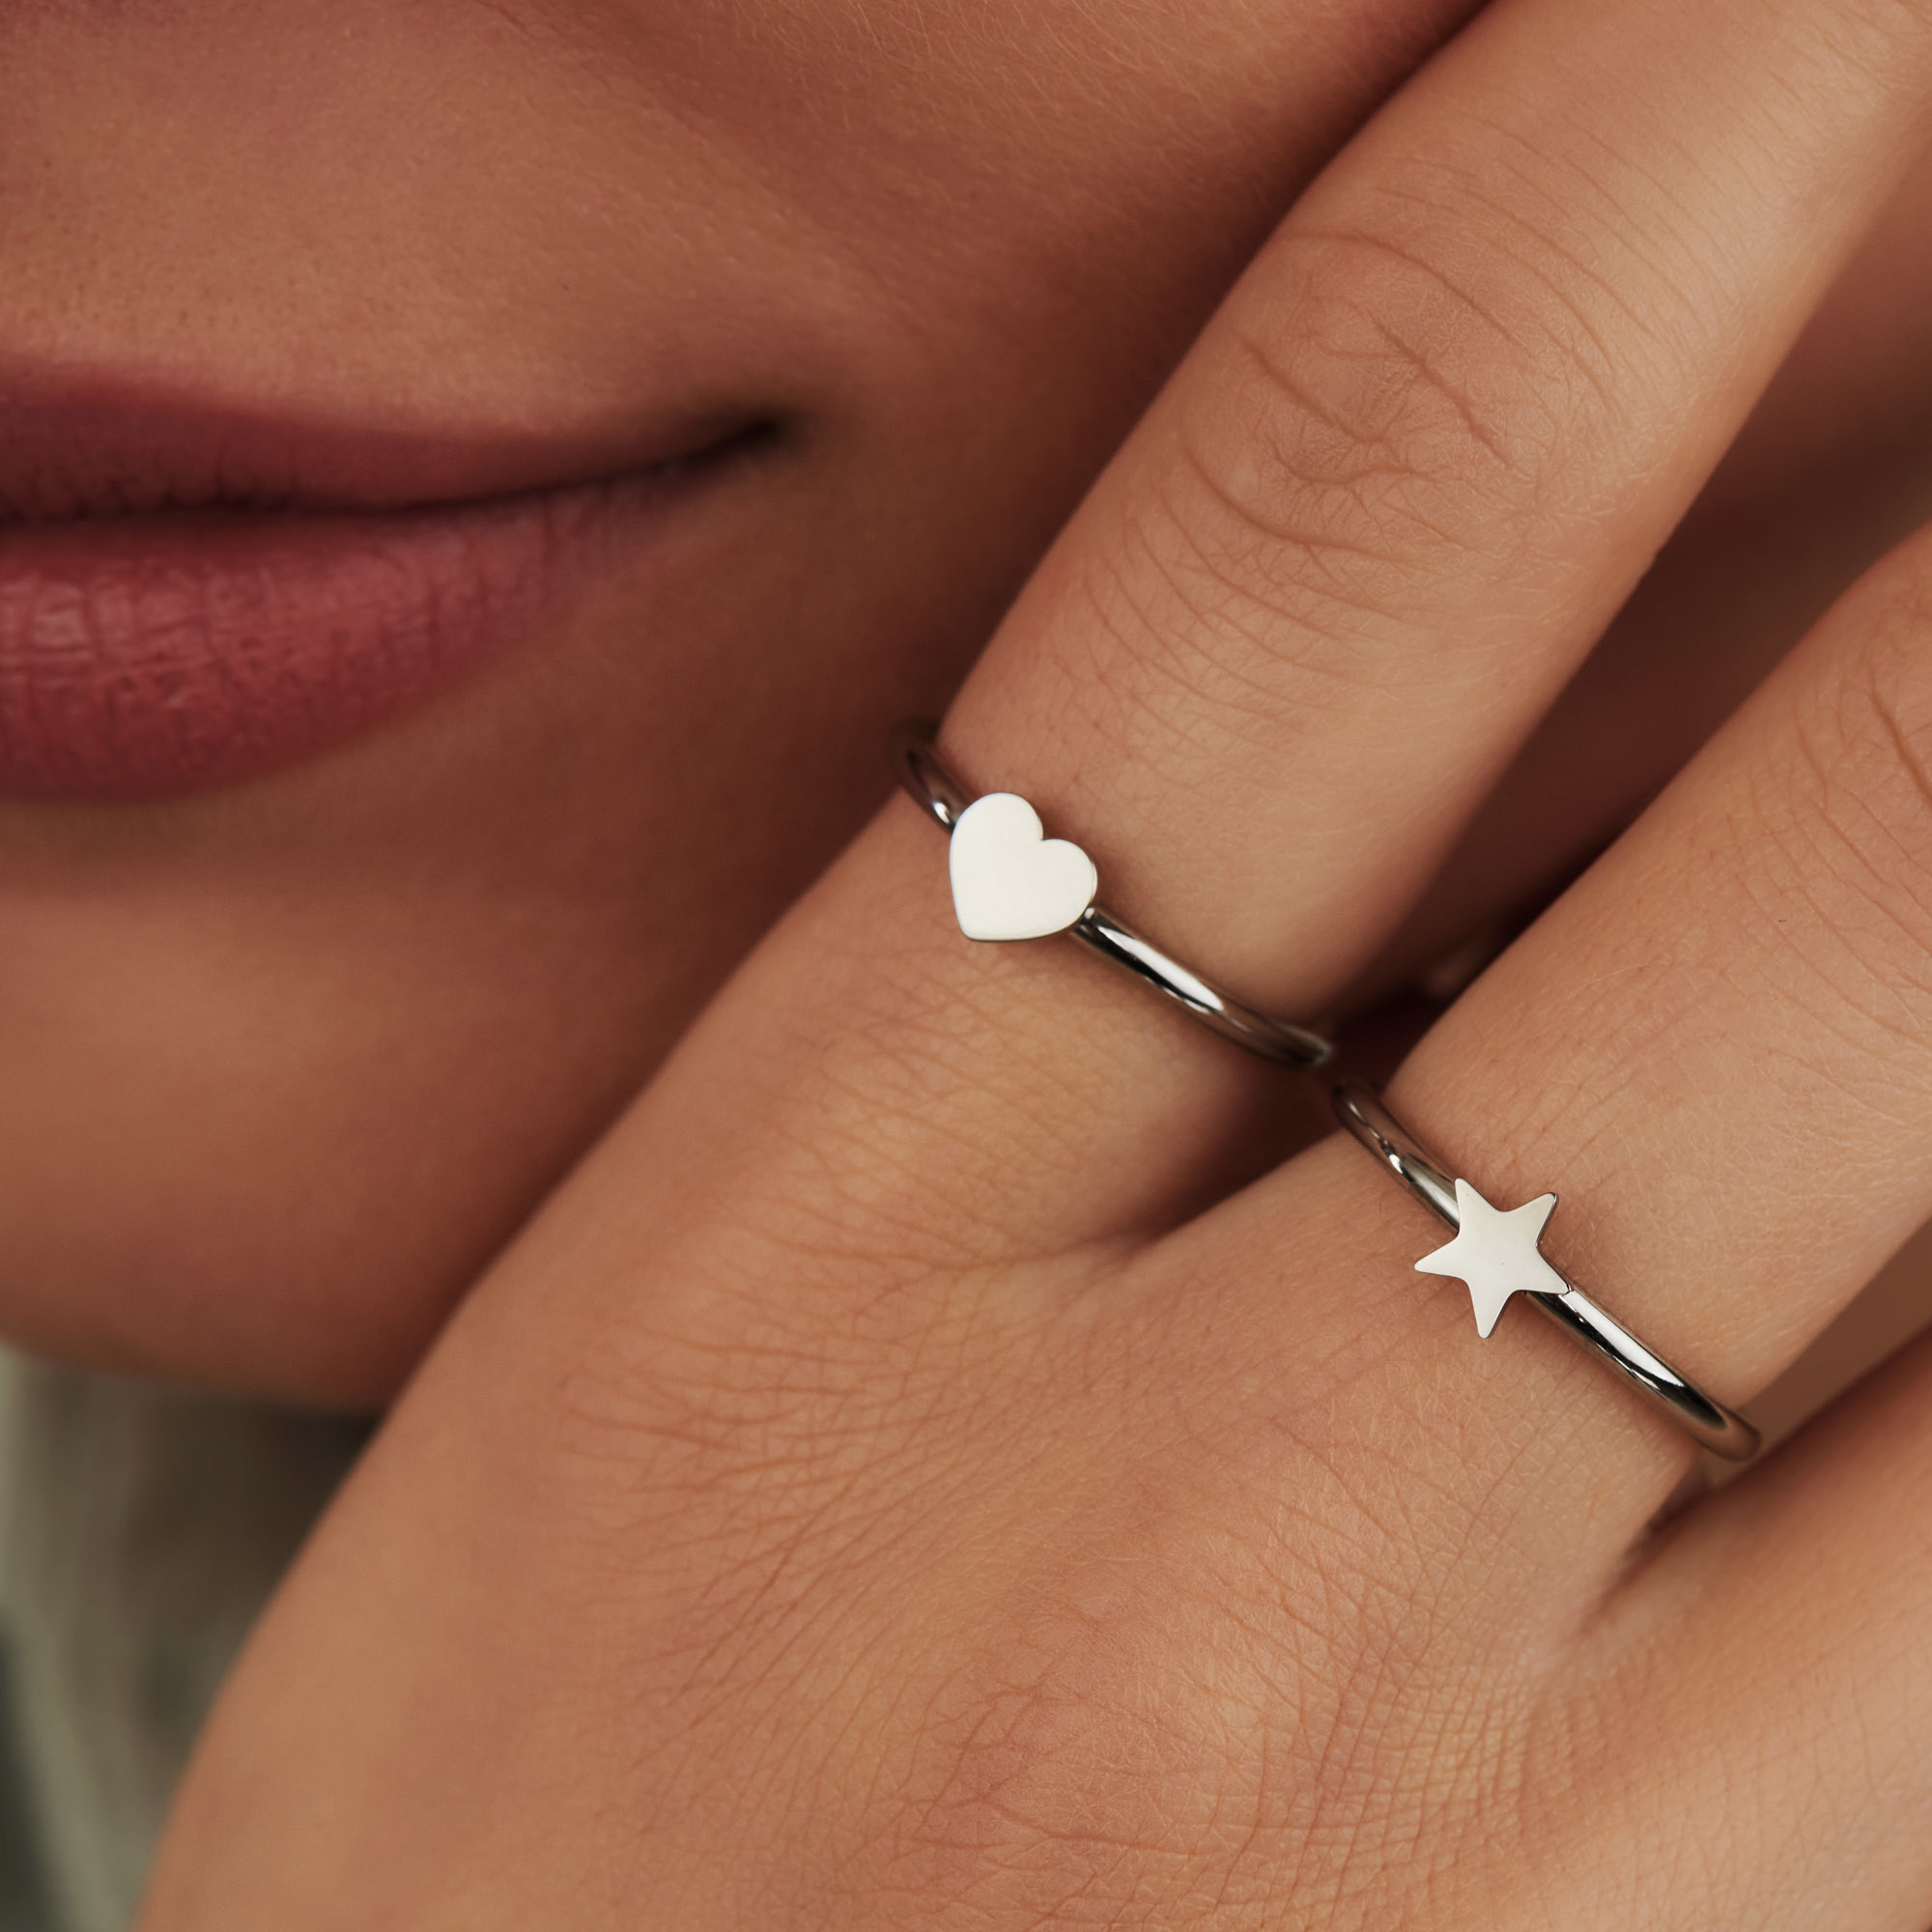 May Sparkle Forever Young Lova zilverkleurige ring met hartje